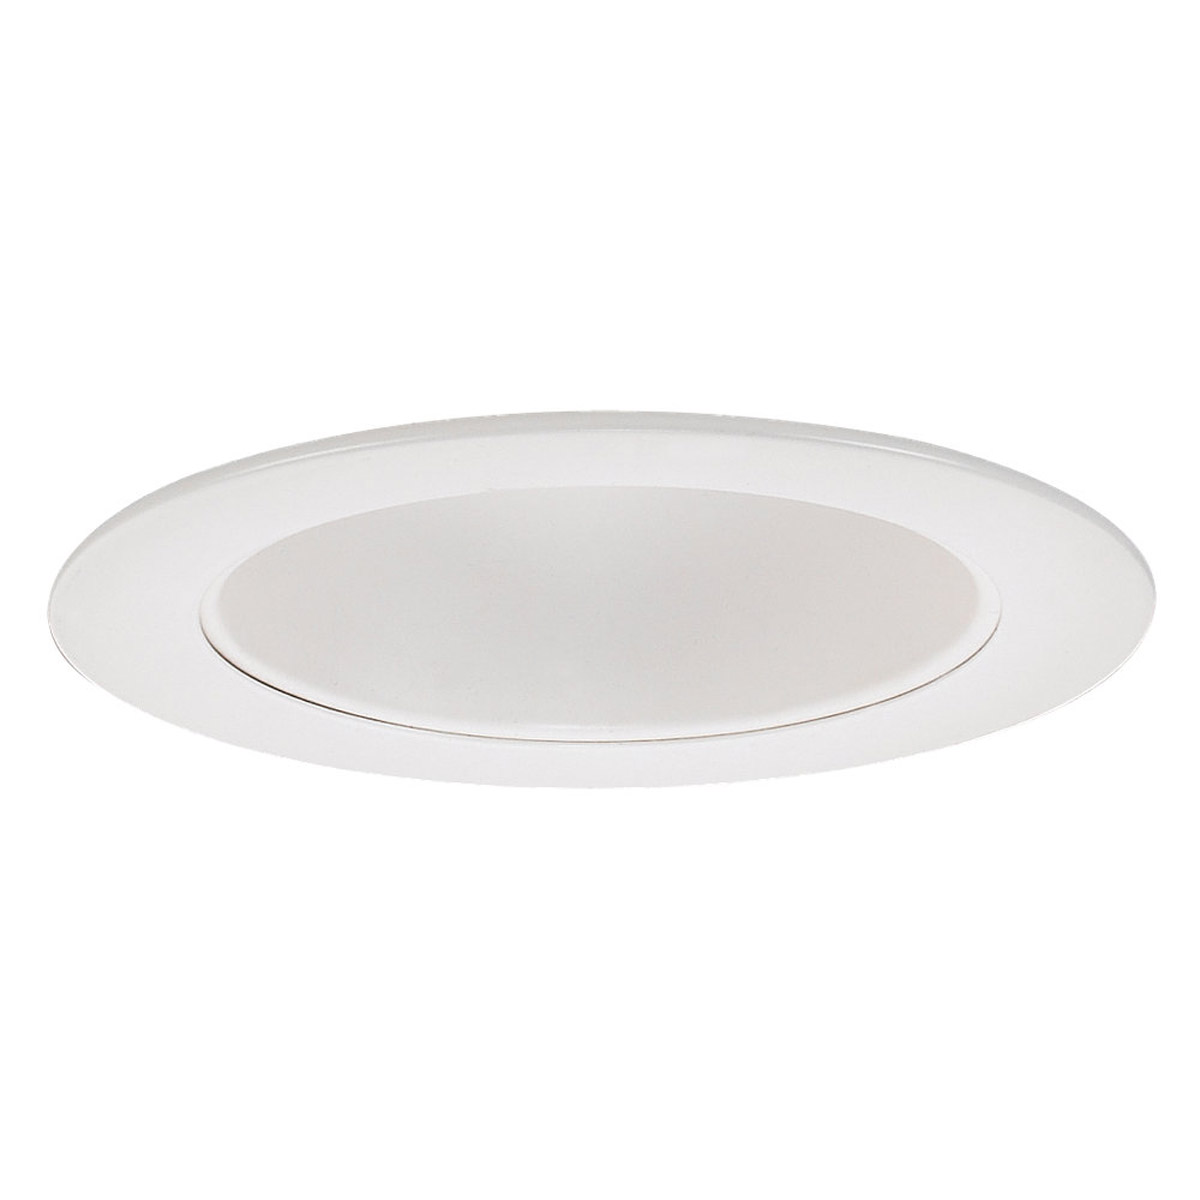 Sea Gull Lighting Signature Recessed Trim Only in White 1232AT-14